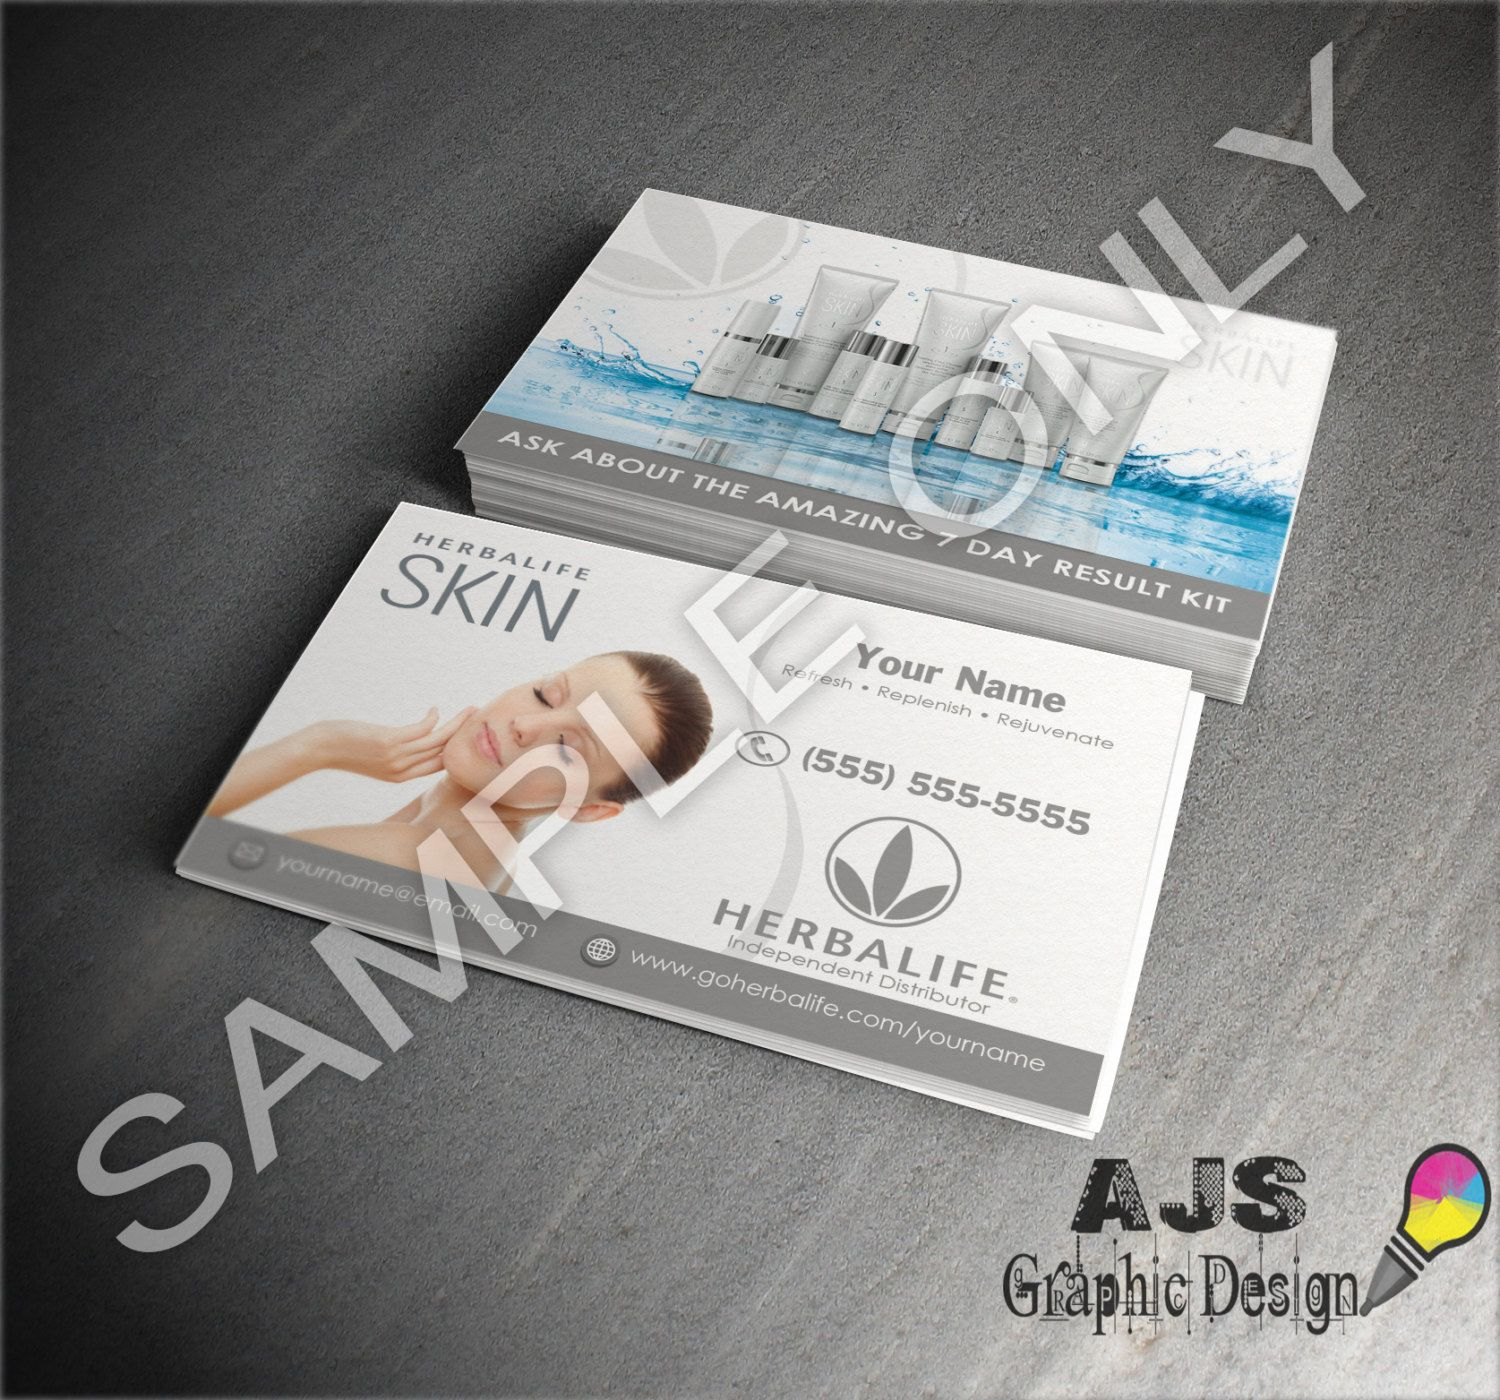 Herbalife Skin Custom Business Cards • Herbalife Graphics ...